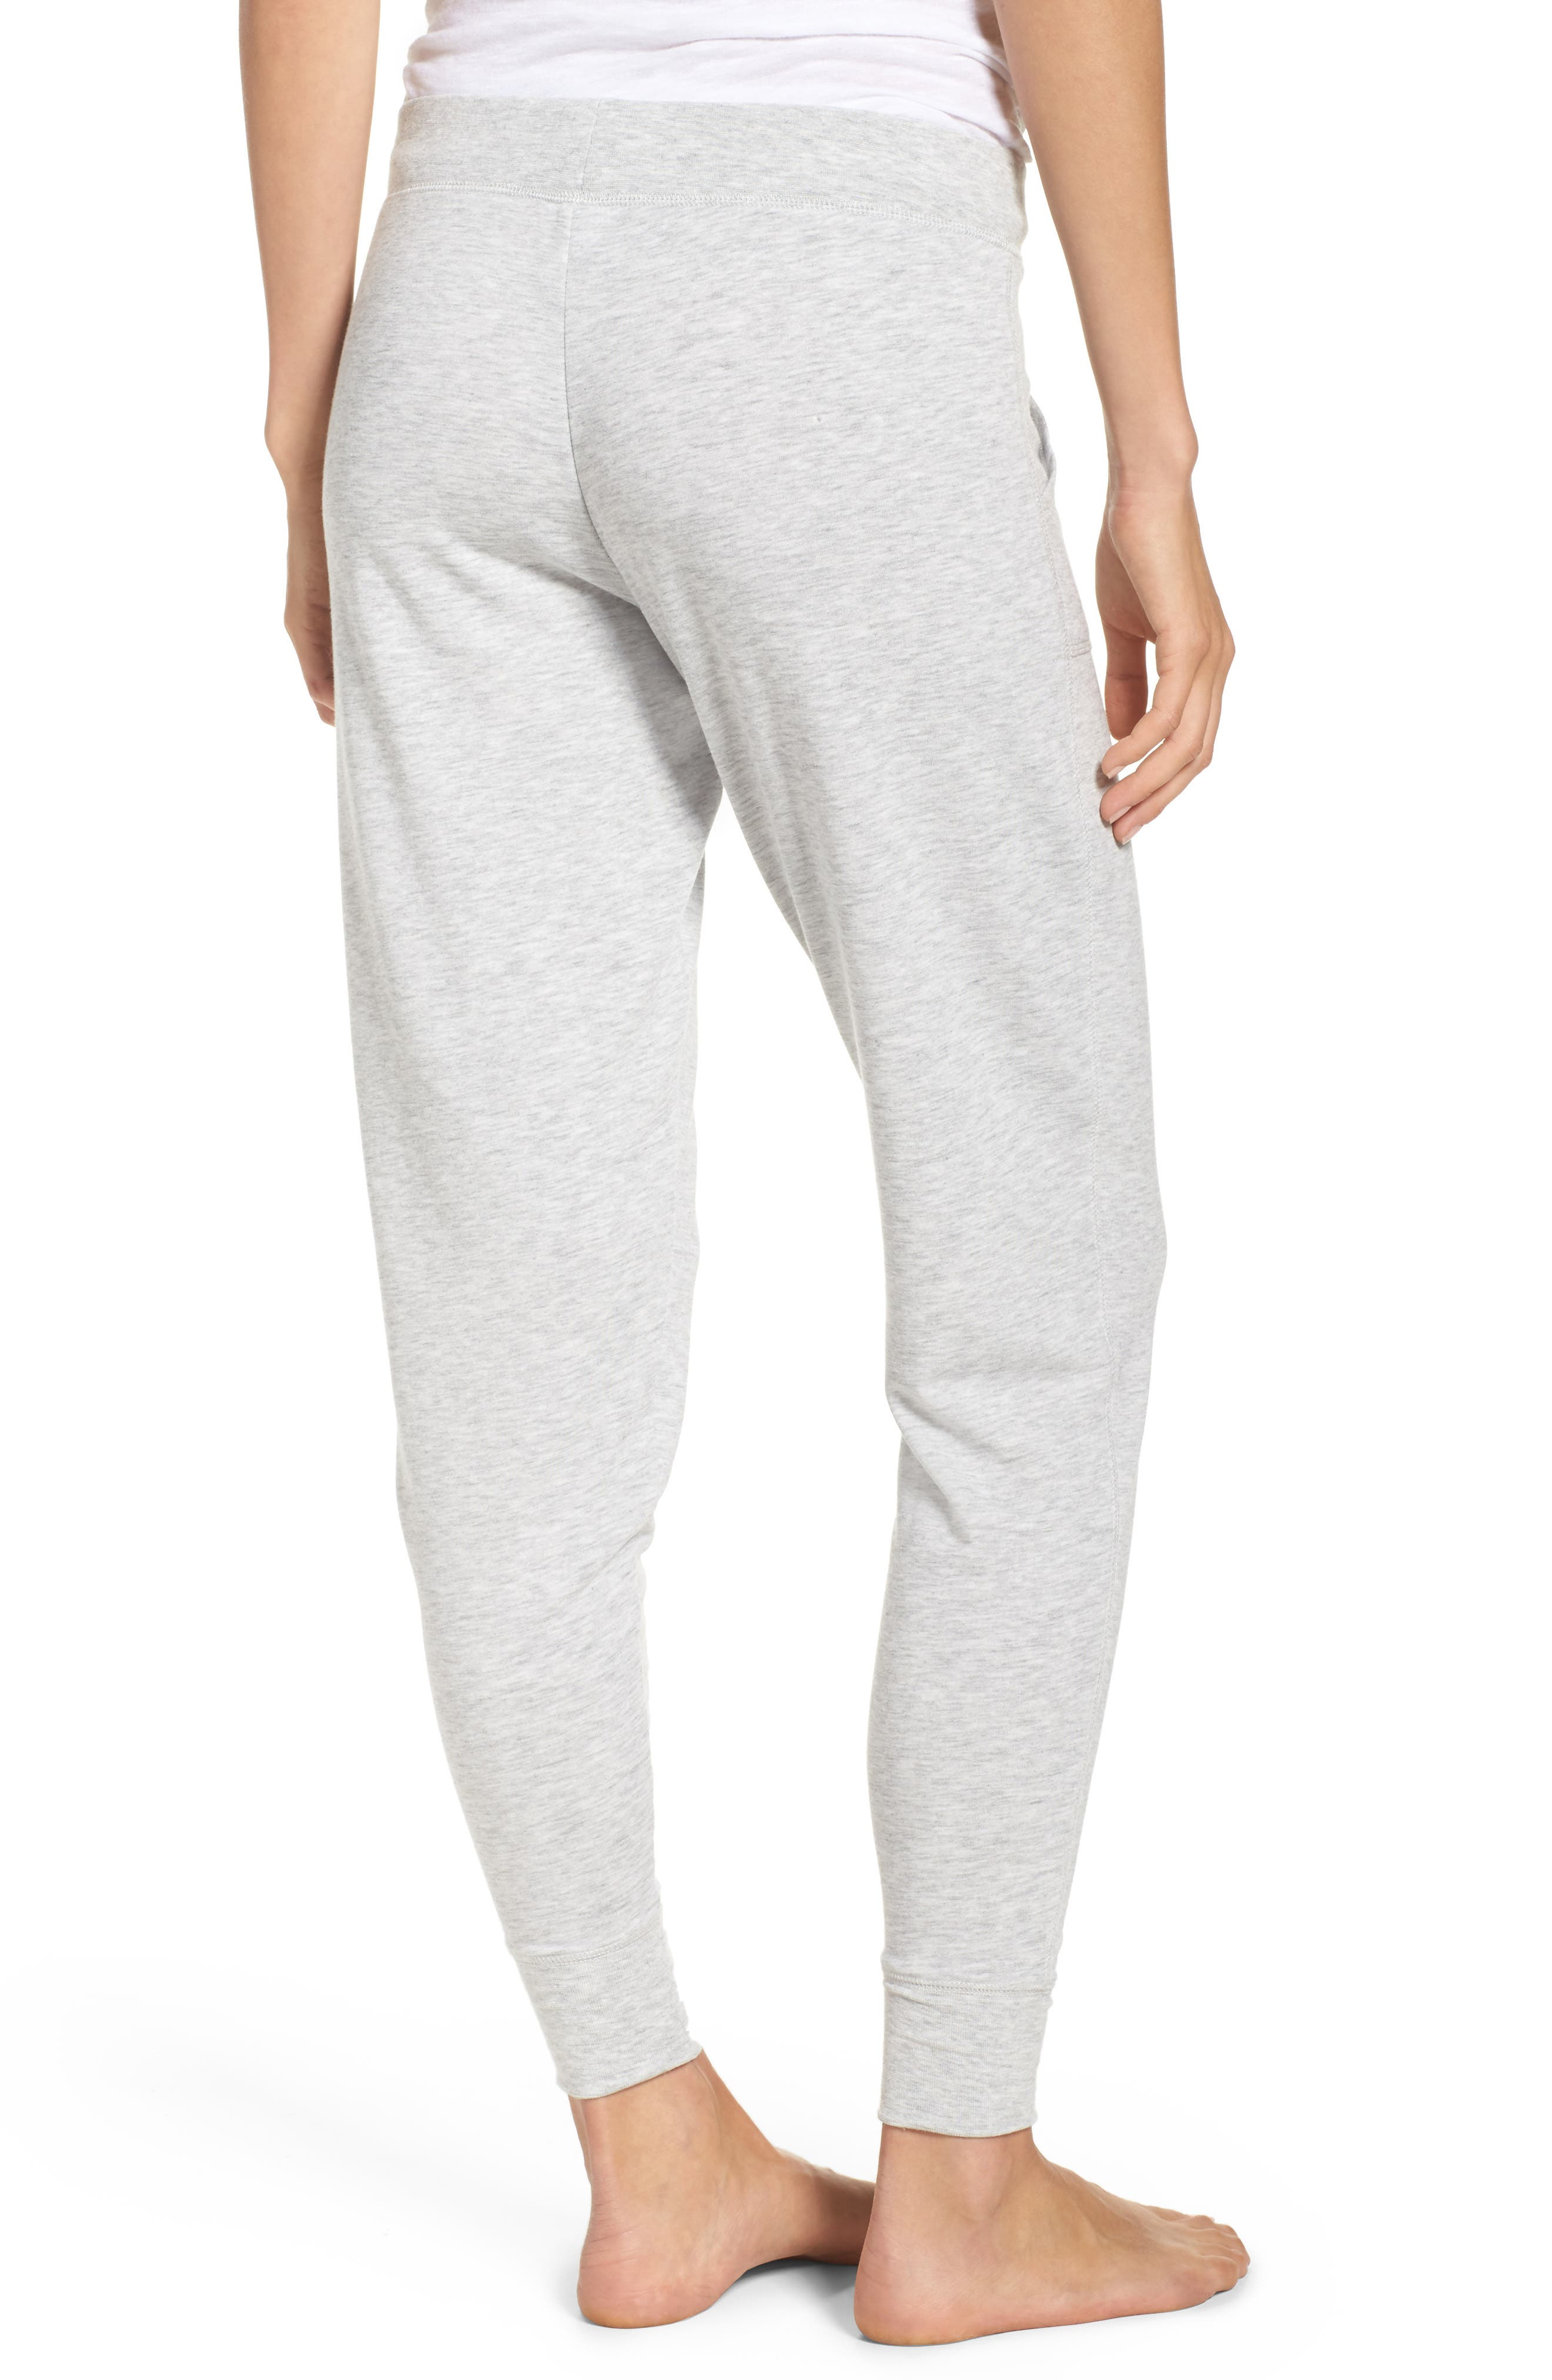 All About It Lounge Pants,                             Alternate thumbnail 9, color,